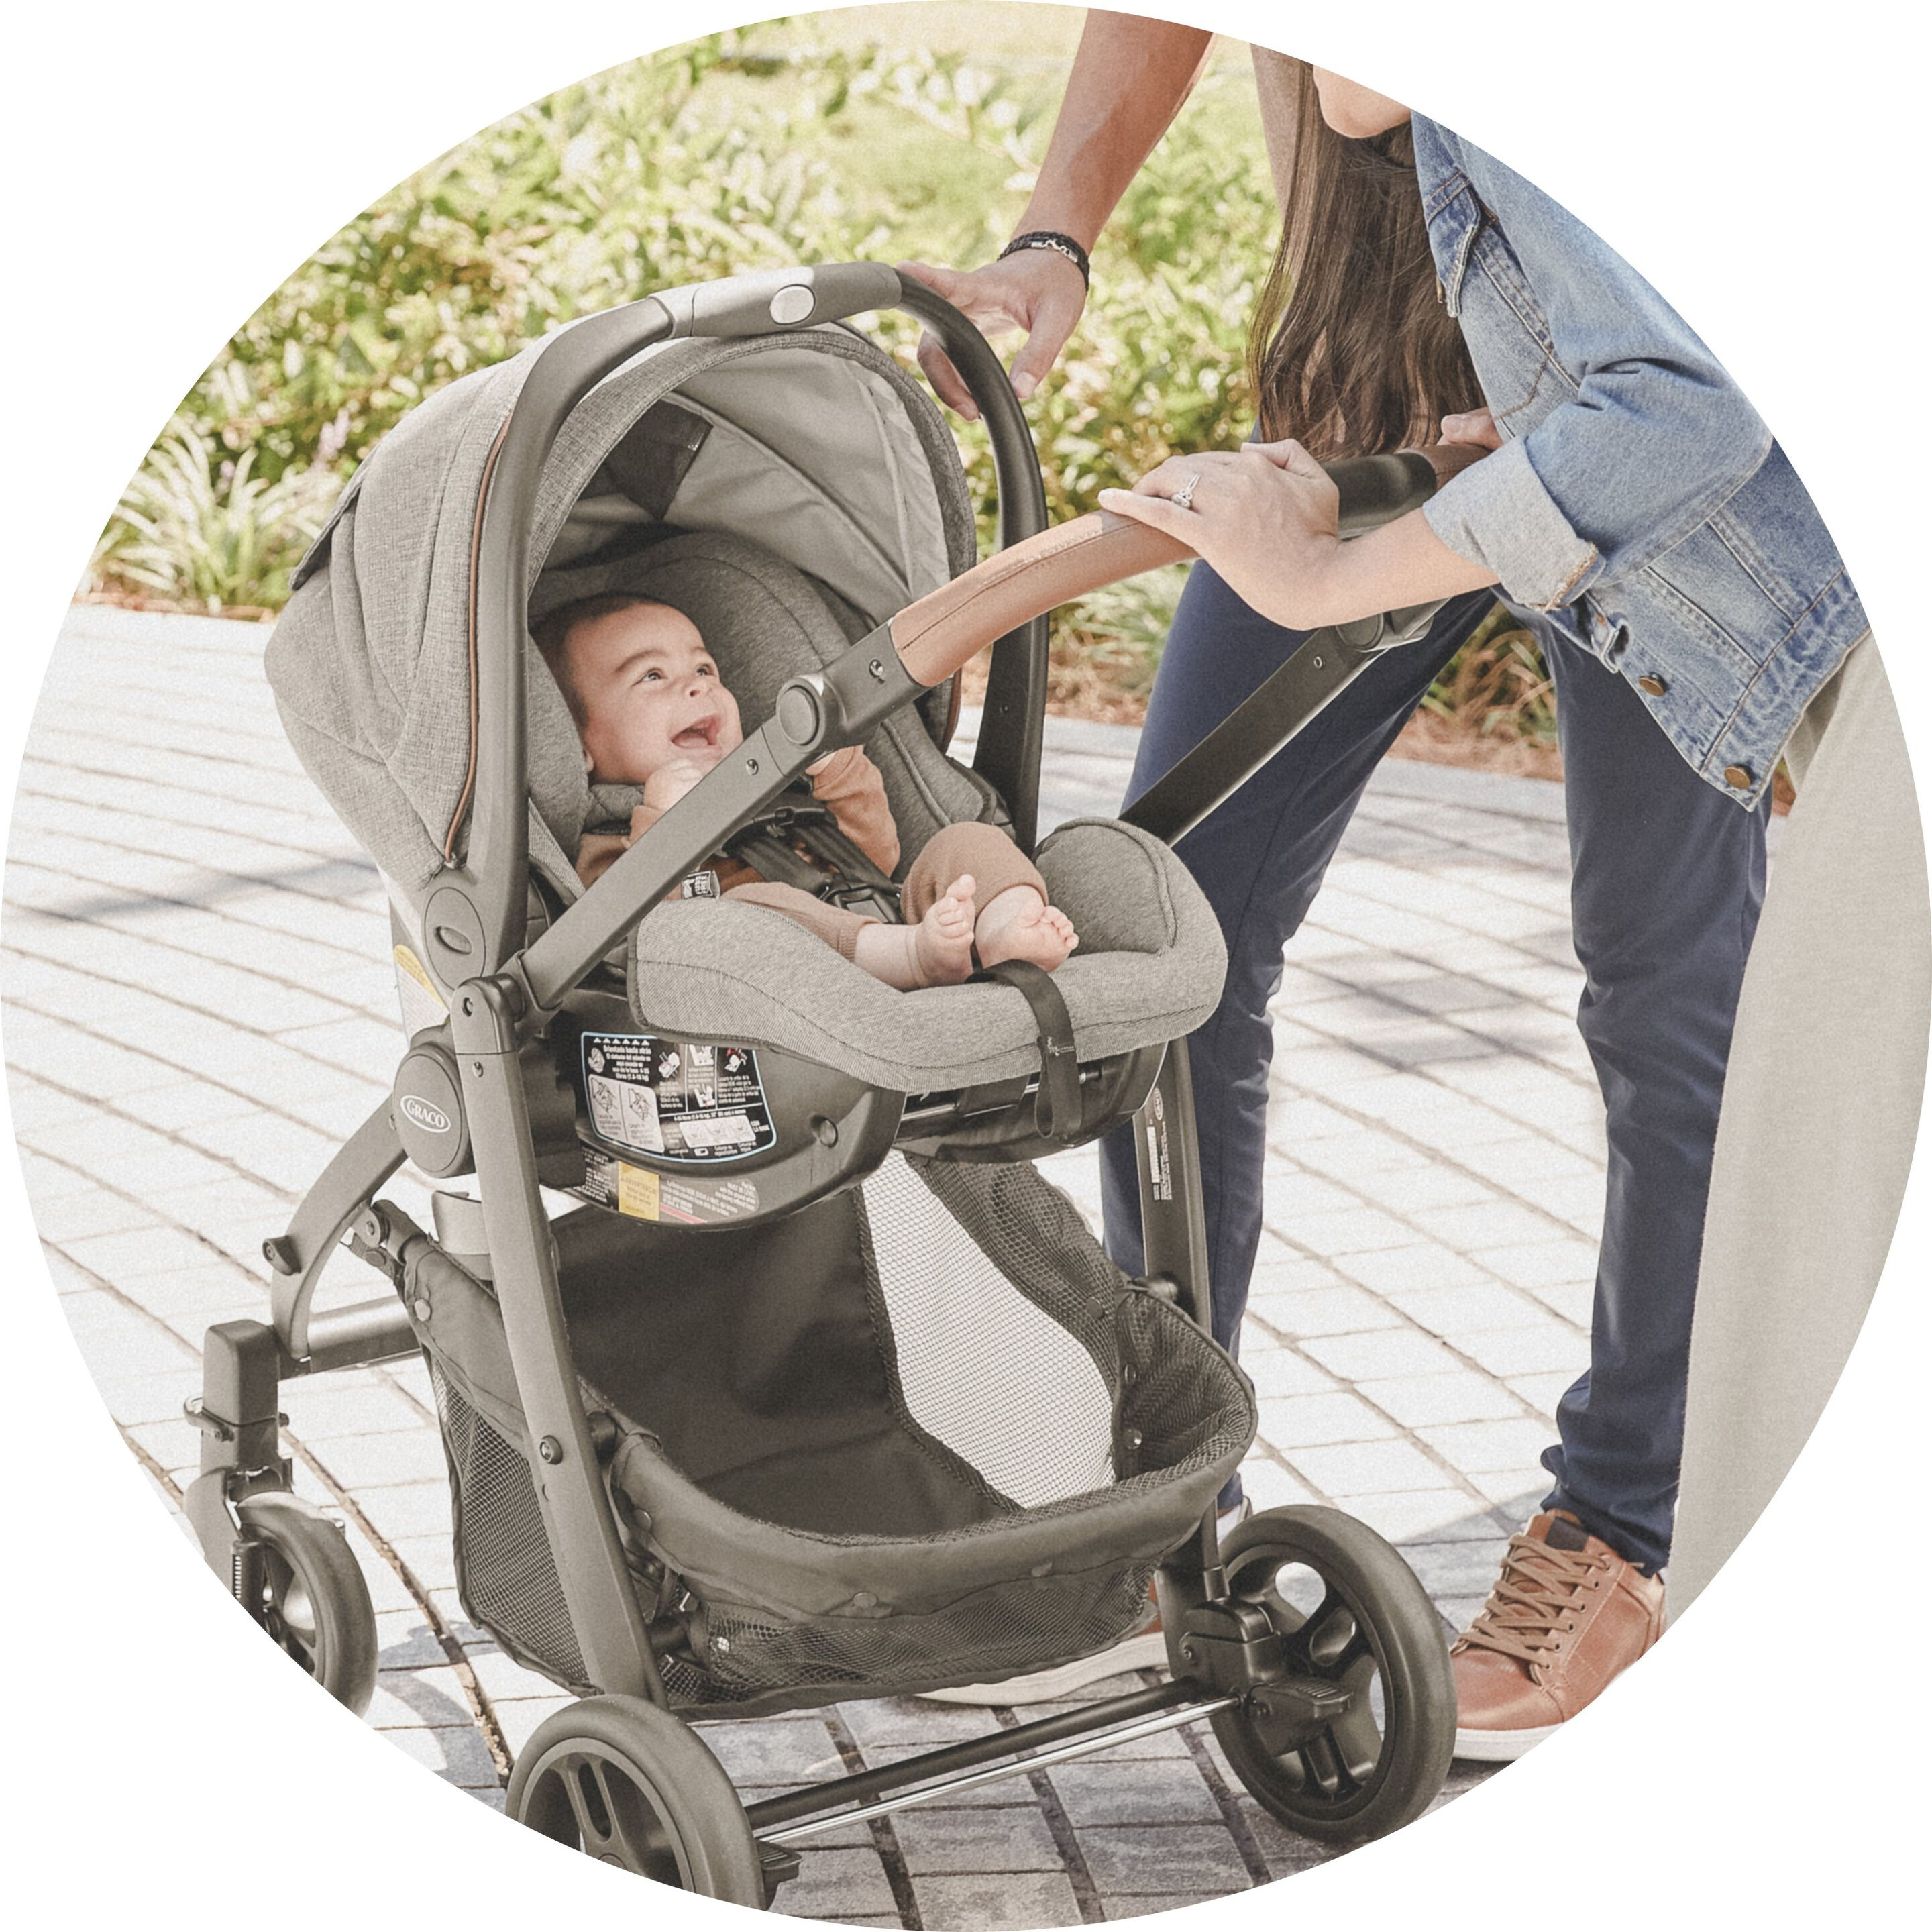 parents playing with child inside premier stroller